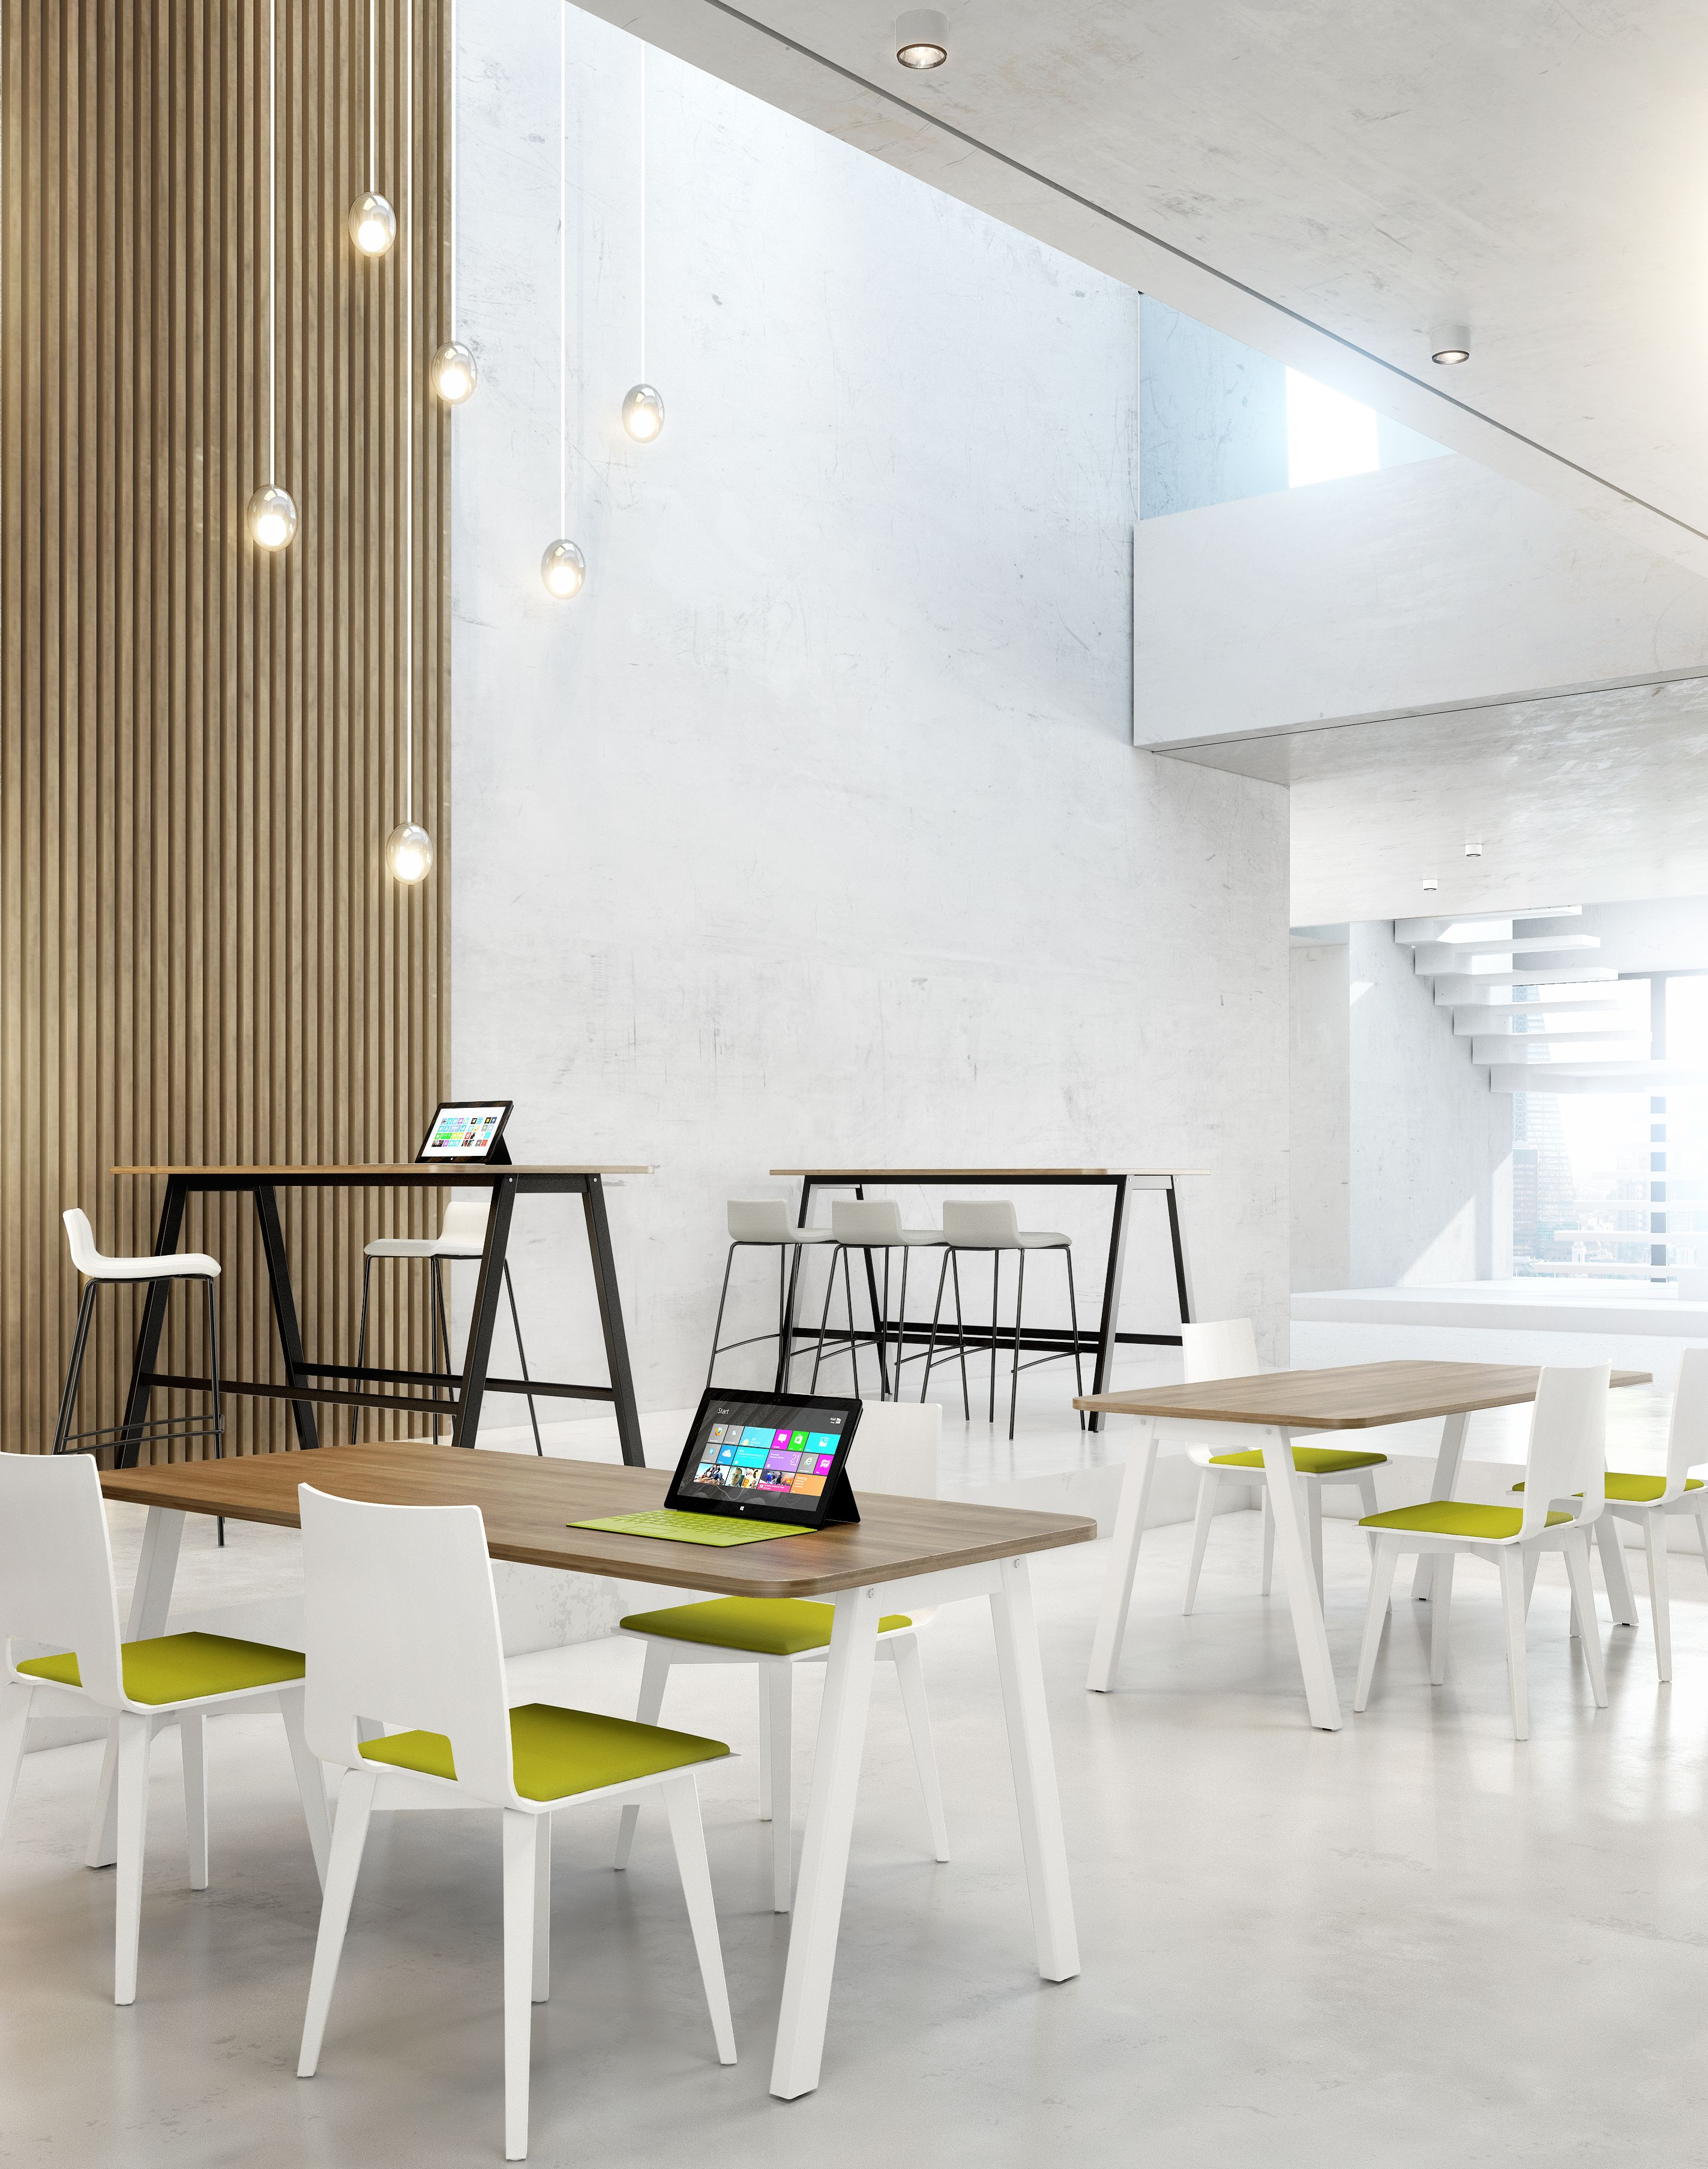 loco bench for agile working and informal breakout spaces from elite rh pinterest com Elite Contemporary Furniture Elite Furniture North Carolina